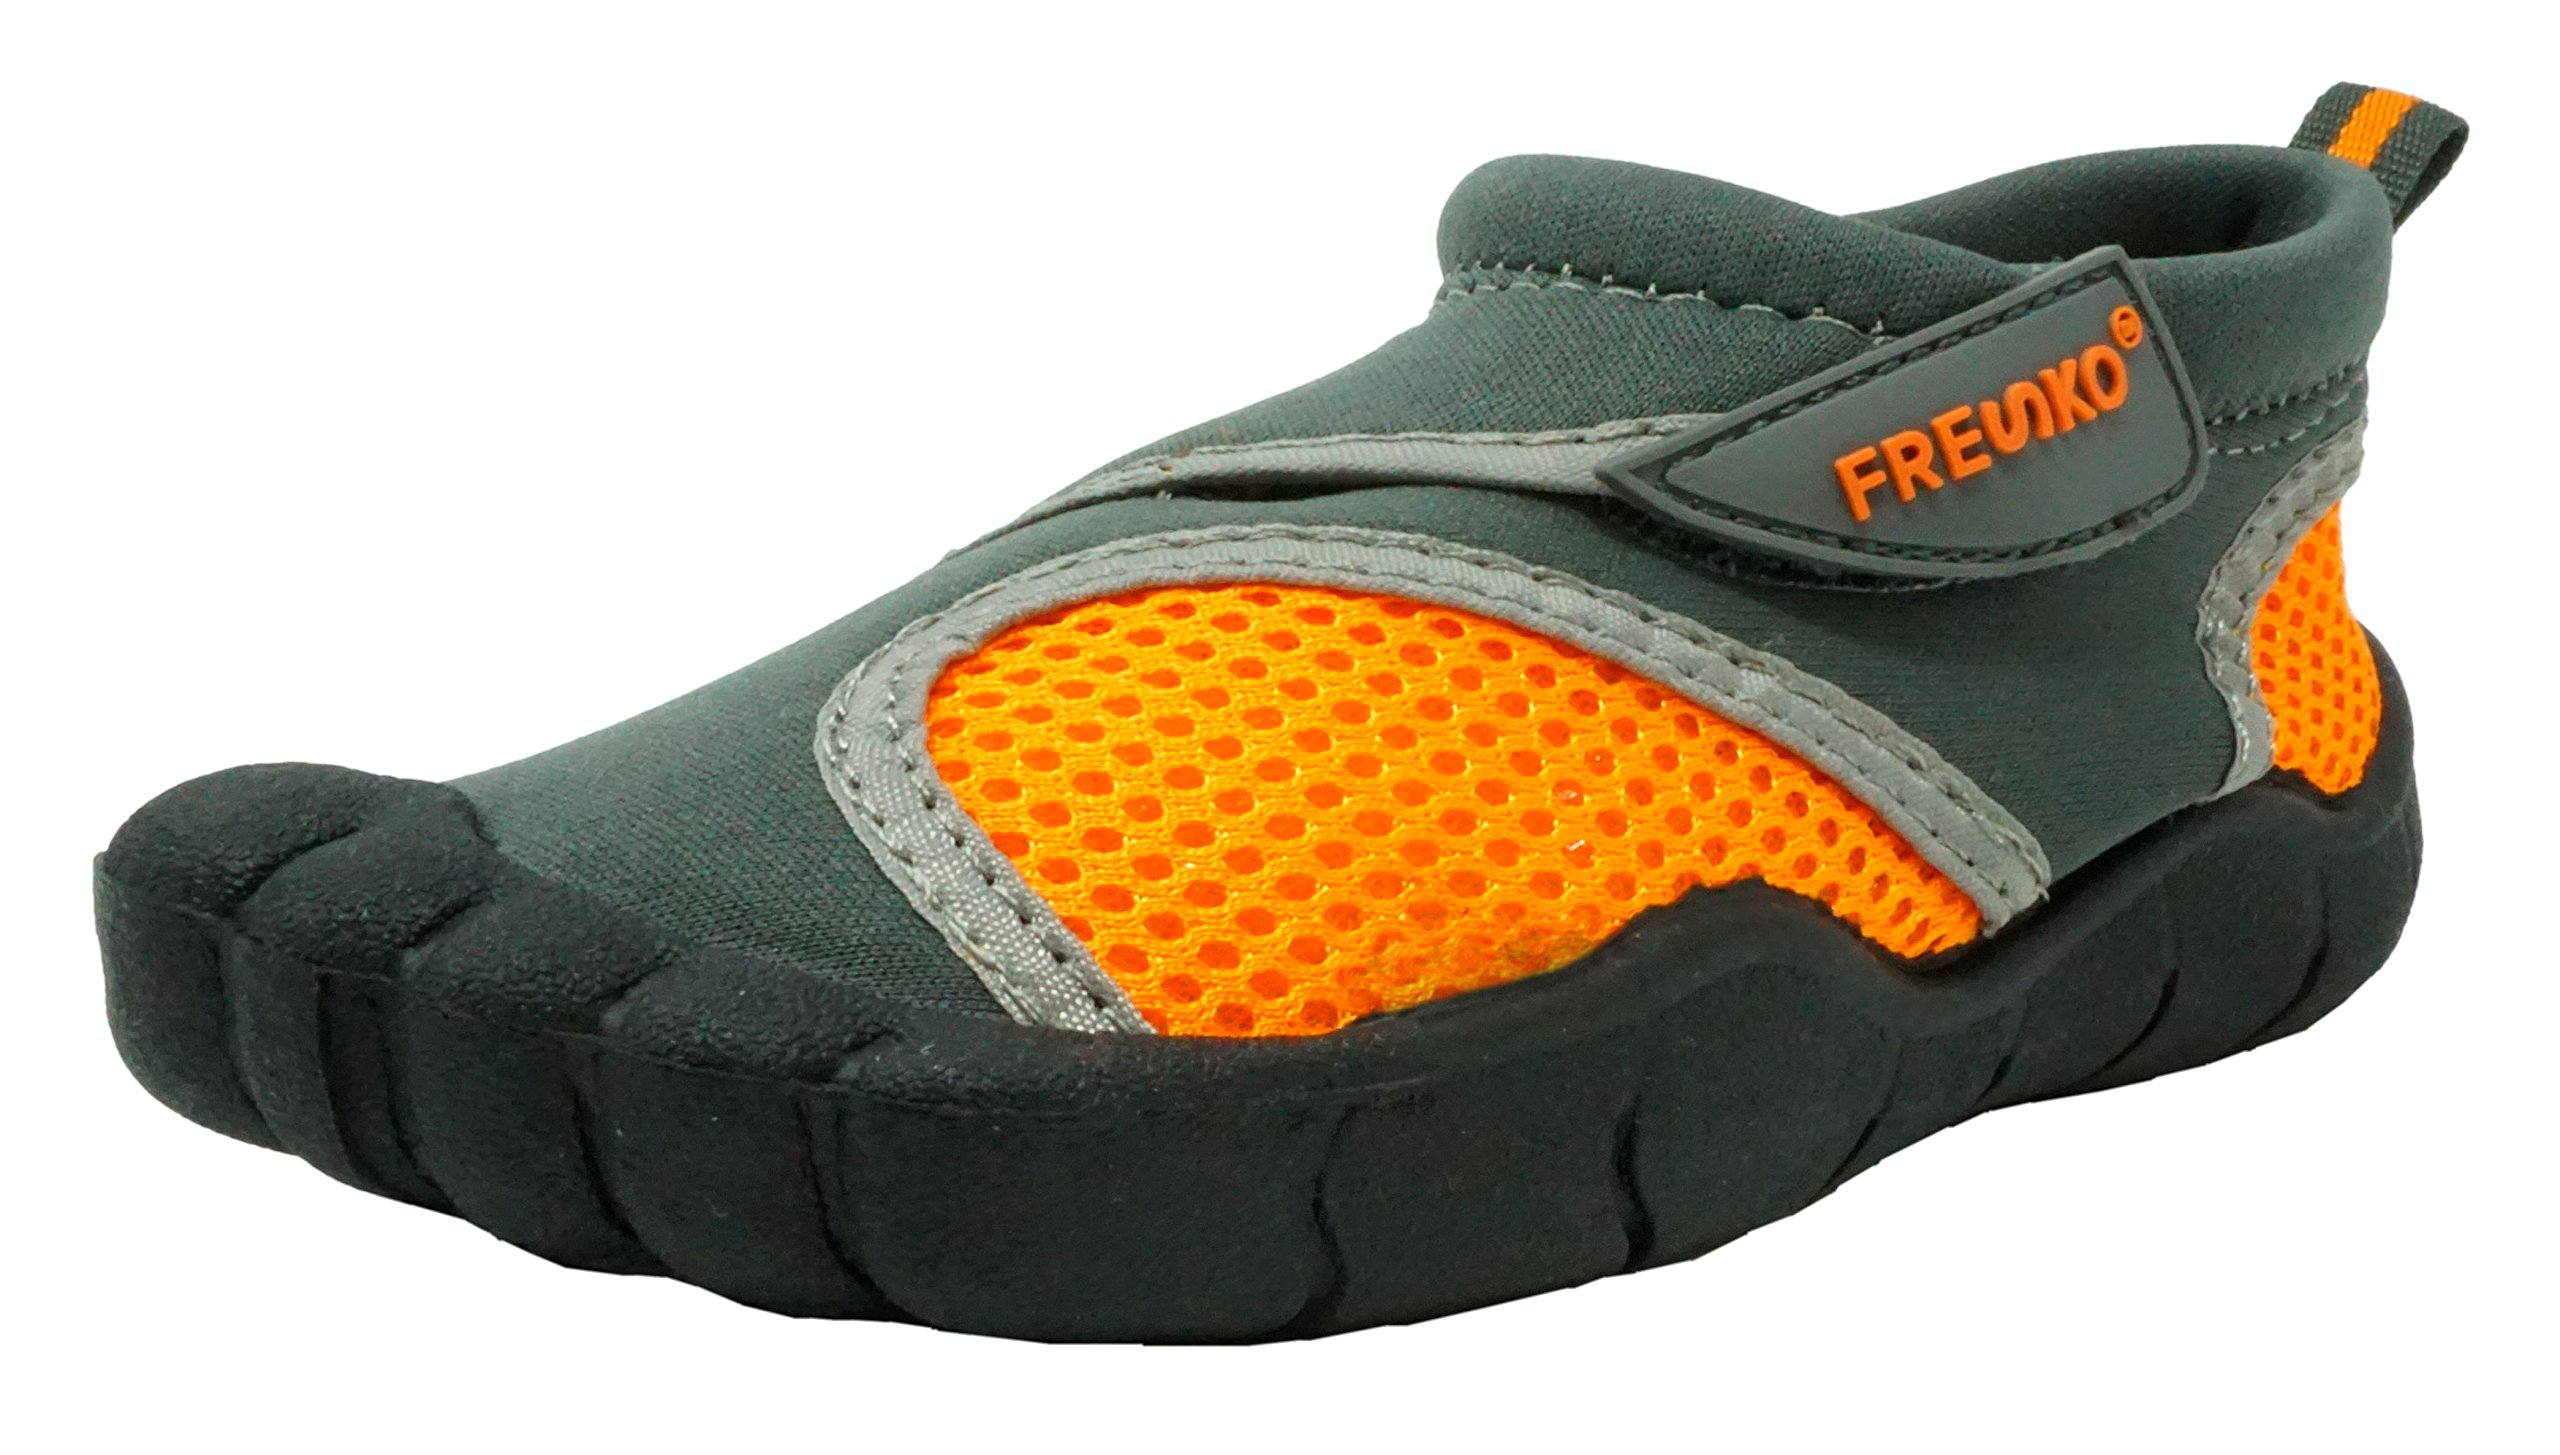 90ddc1902bc7 Galleon - Fresko Toddler Water Shoes For Boys And Girls